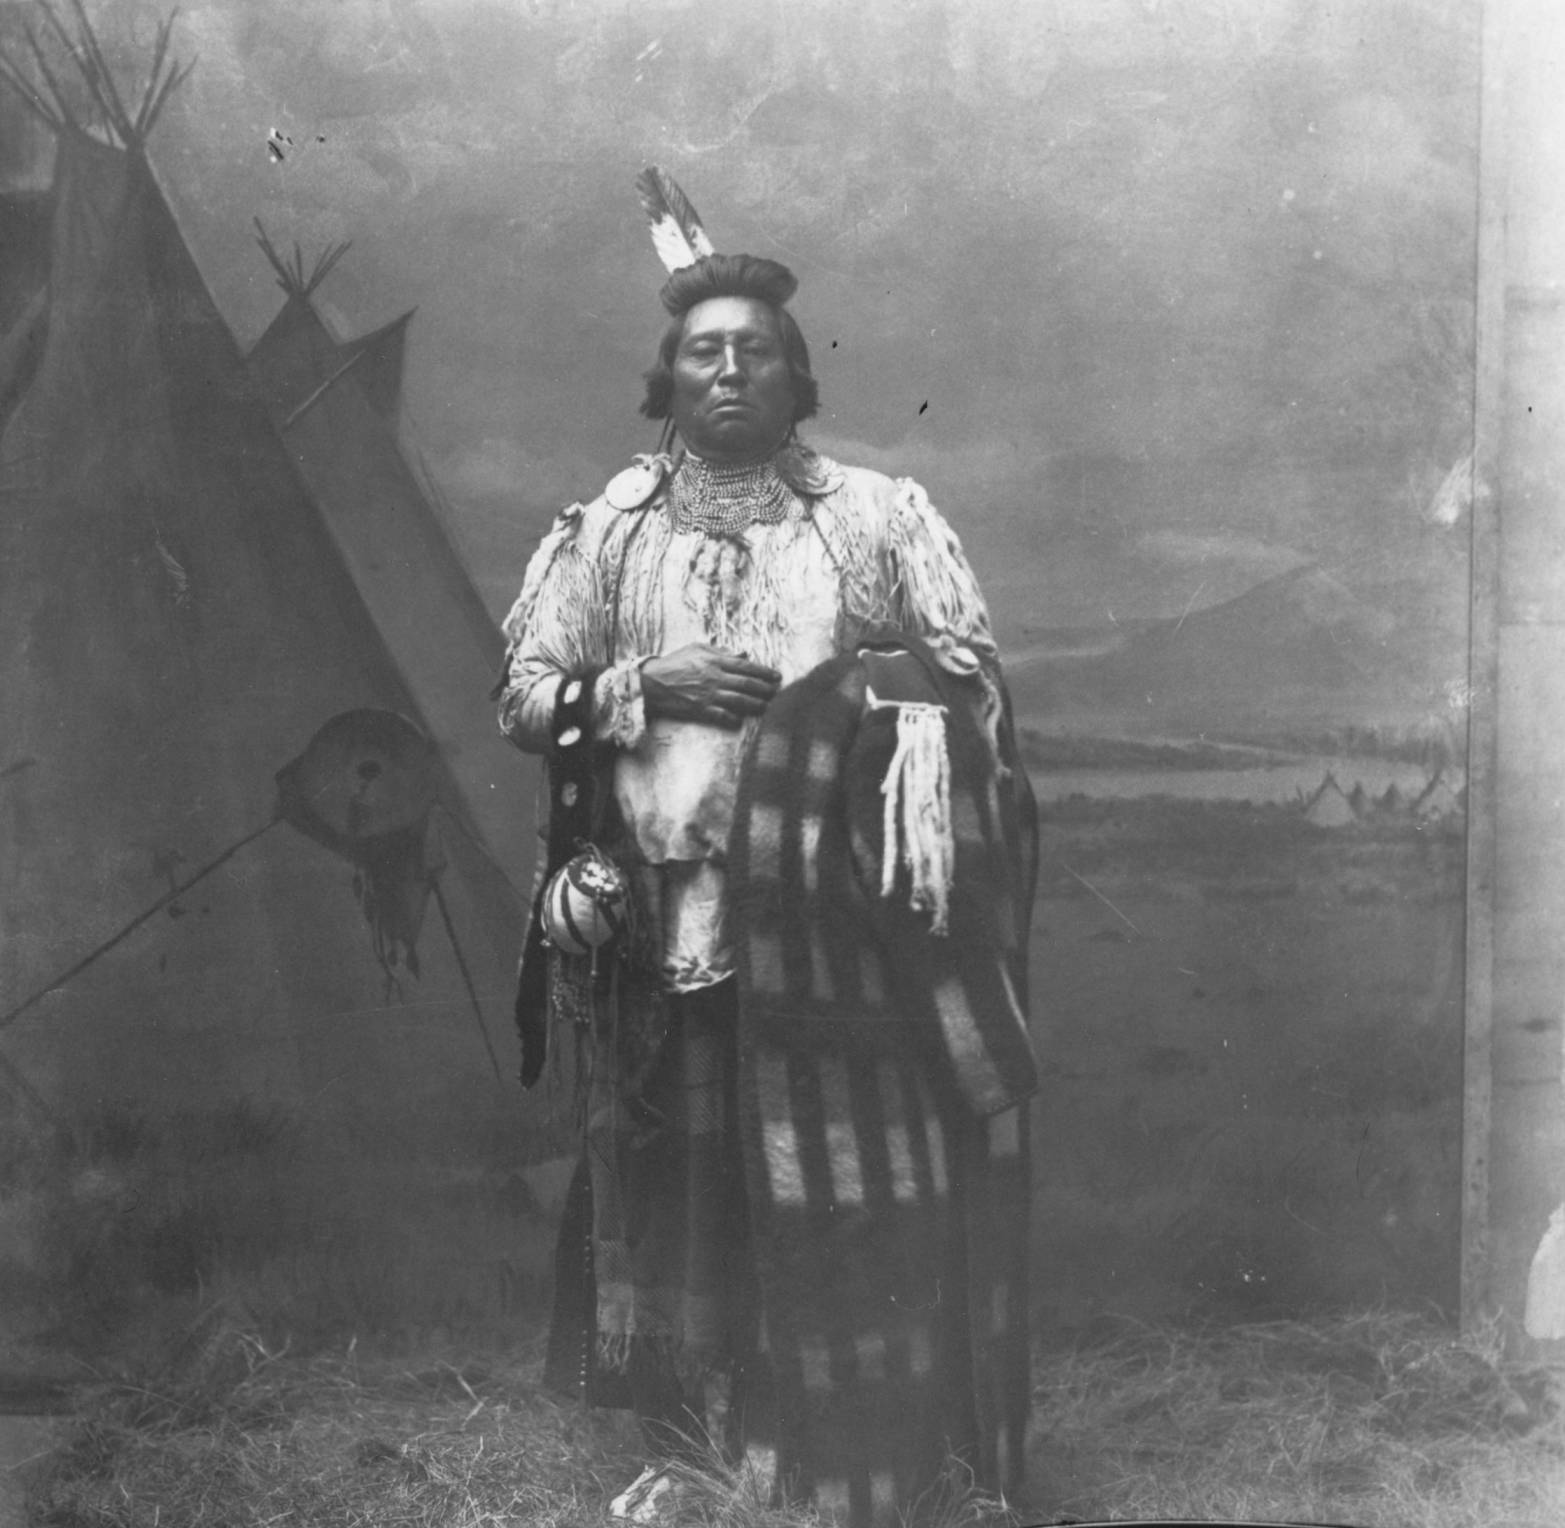 item thumbnail for Chief Wolf Necklace in regalia and blanket, studio glass negative